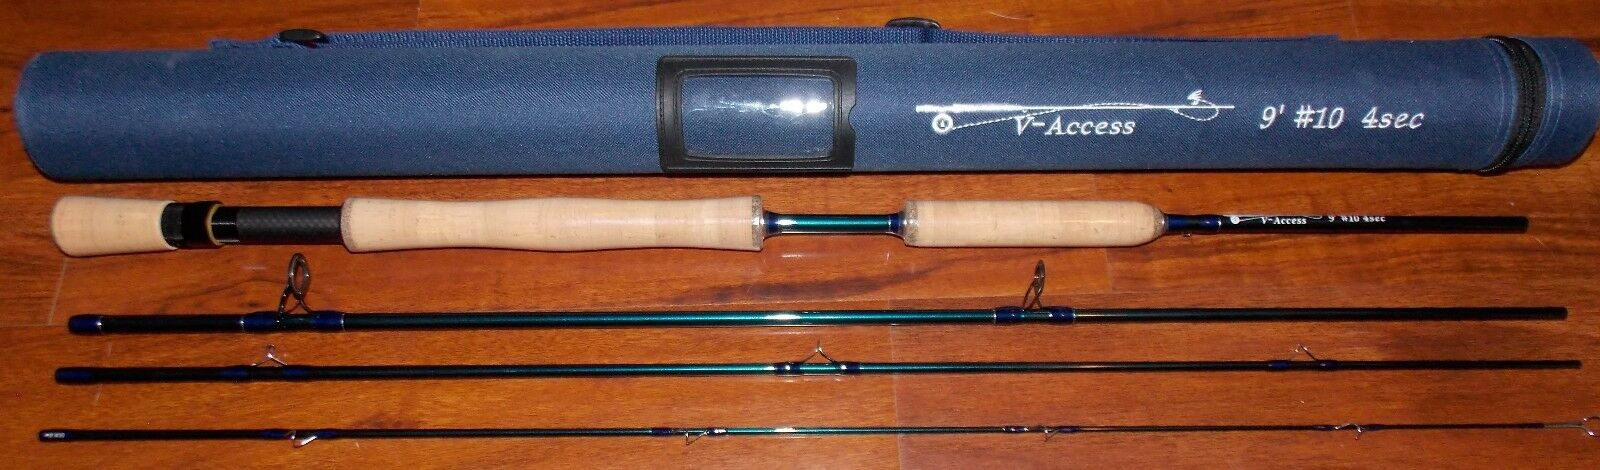 10 WT V-Access  Fly Fishing Rod   9 Foot  4 Sec. with Tube  FREE 3 DAY SHIPPING